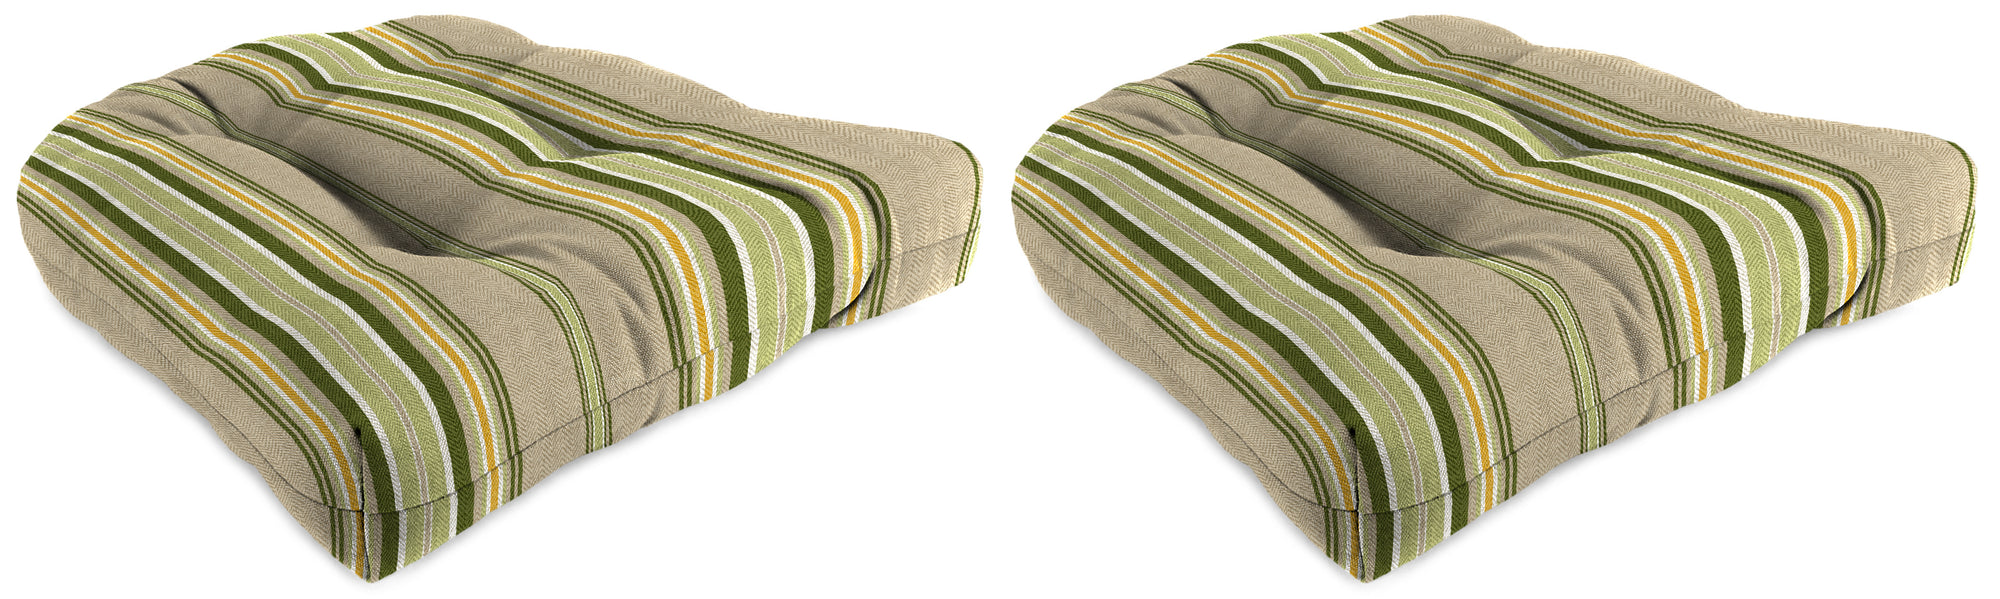 "Set of 2 Outdoor 18"" Wicker Chair Cushions-TERRACE SUNRISE RICHLOOM"